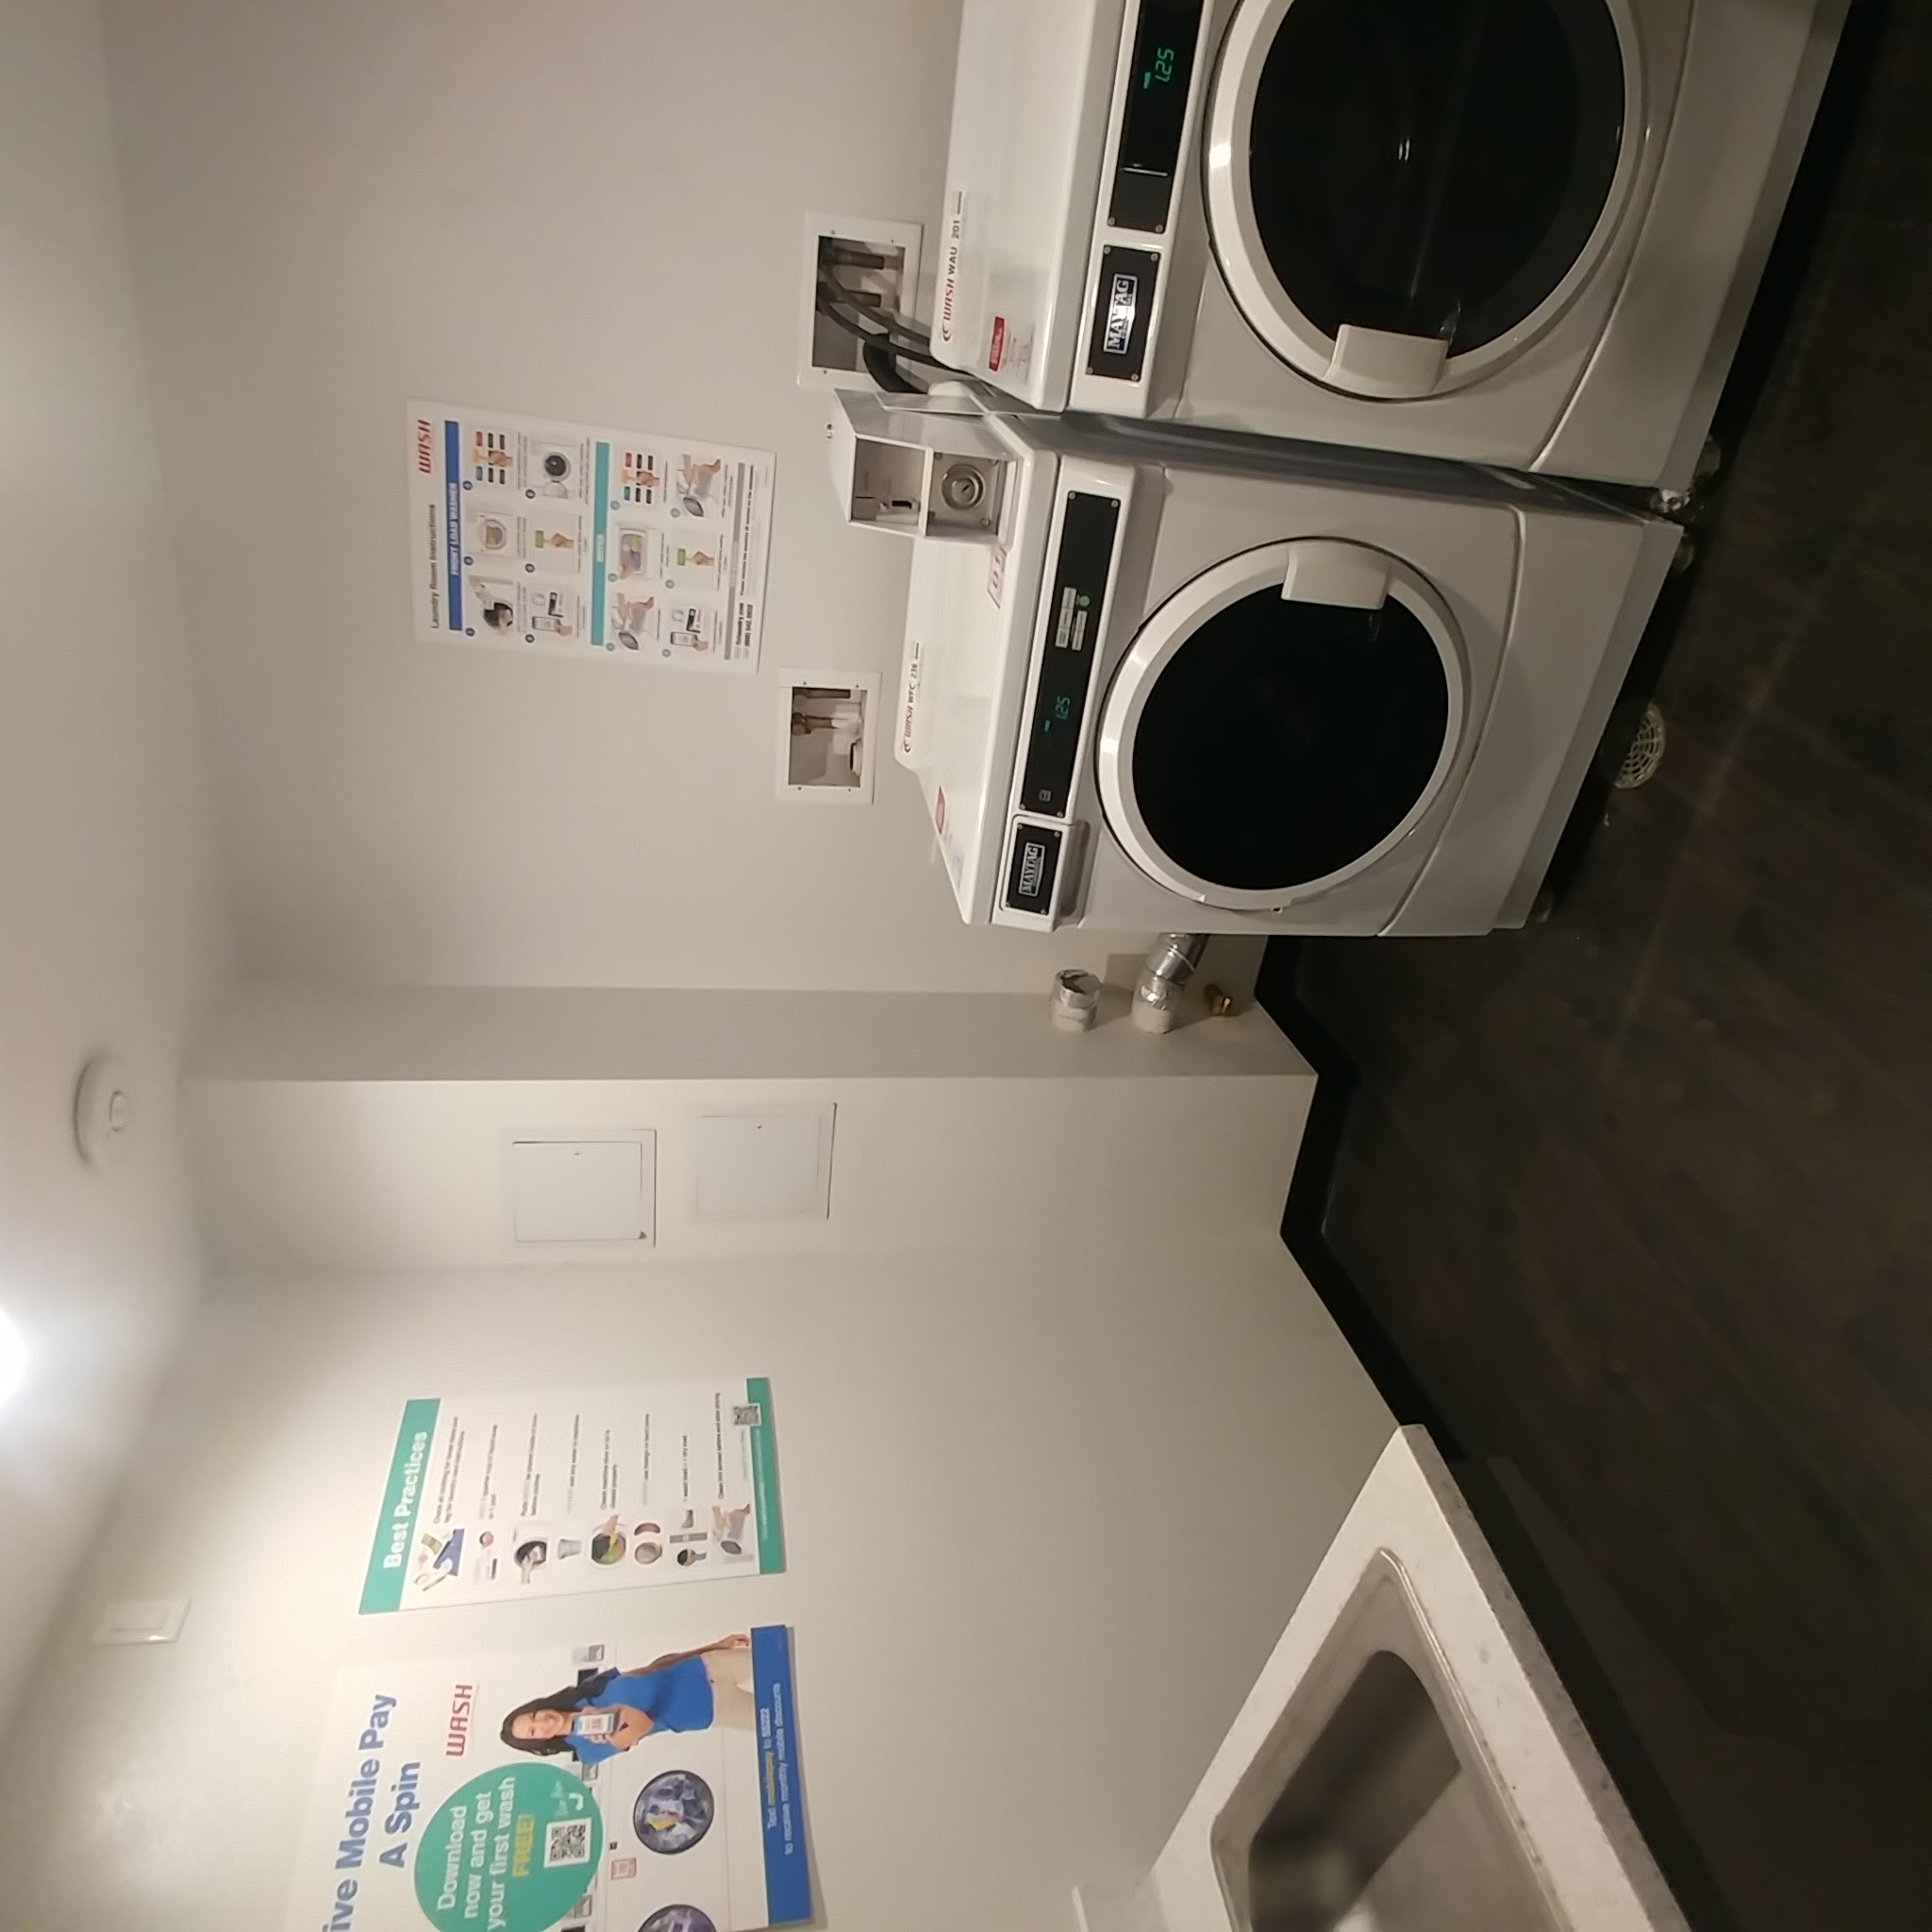 Panama Apartments laundry room. image contains two front load washing units, sink, and operating signs posted on wall